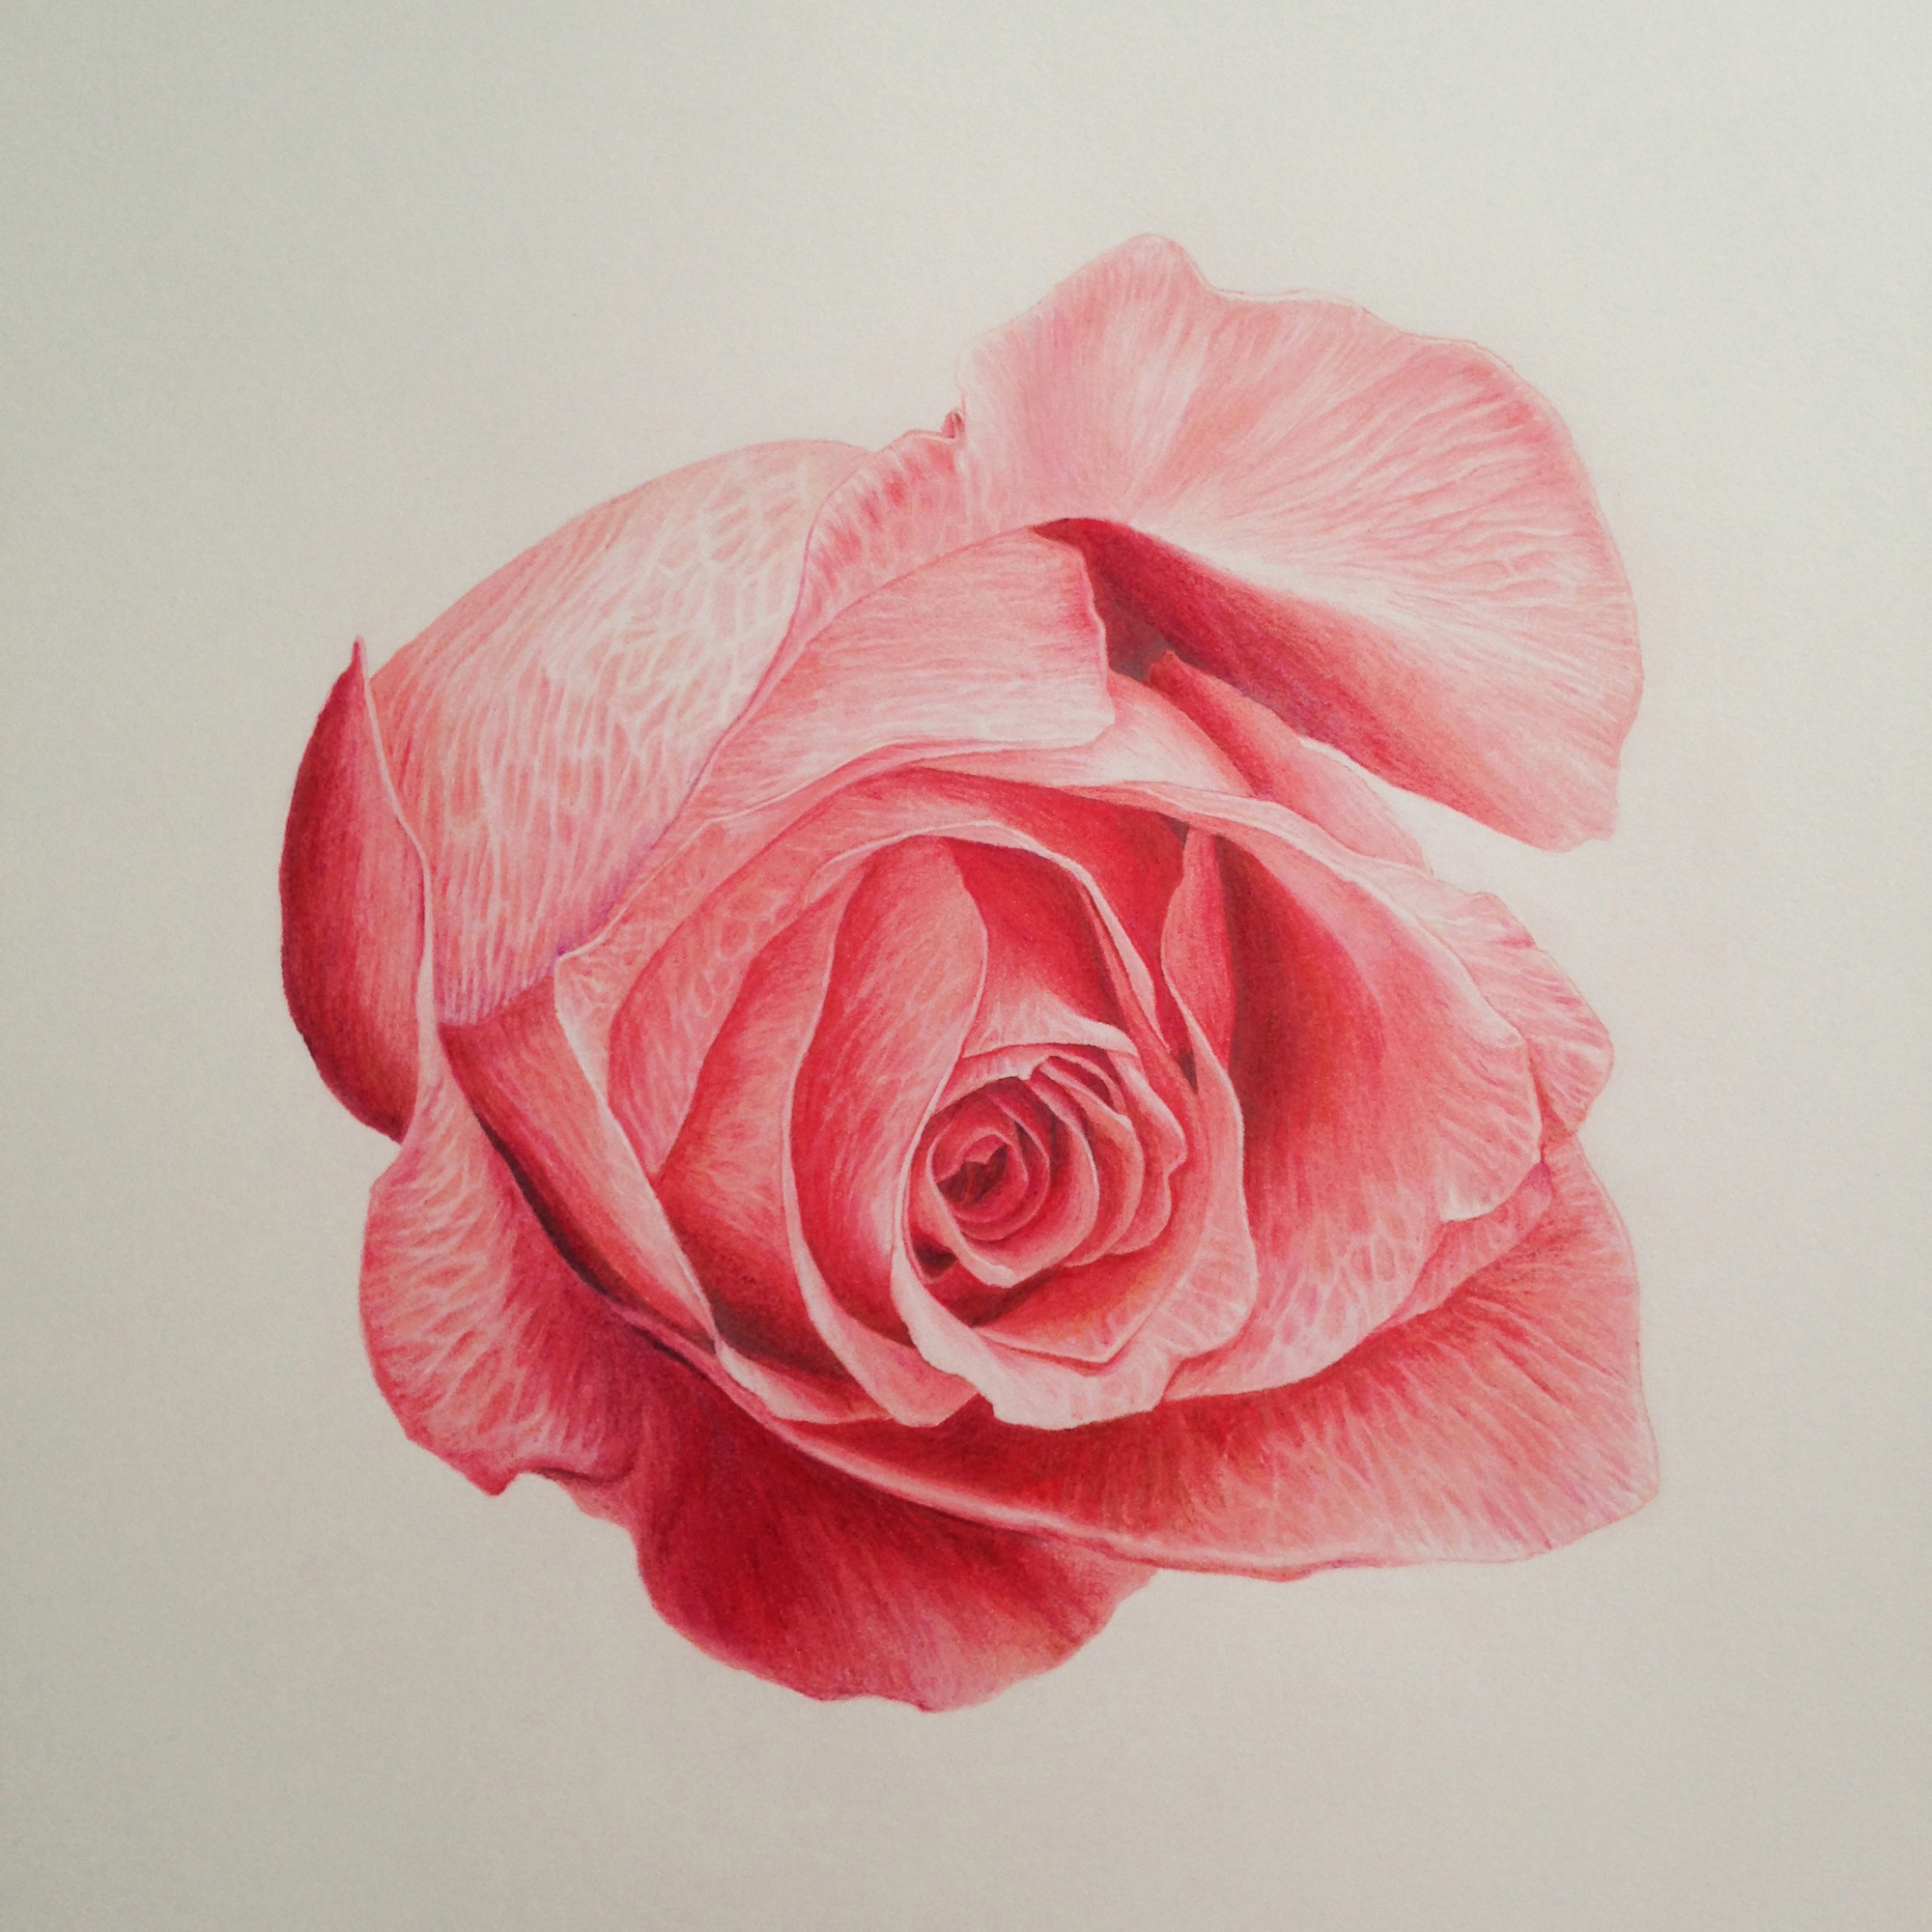 Rose Drawing In Color At Getdrawings Com Free For Personal Use